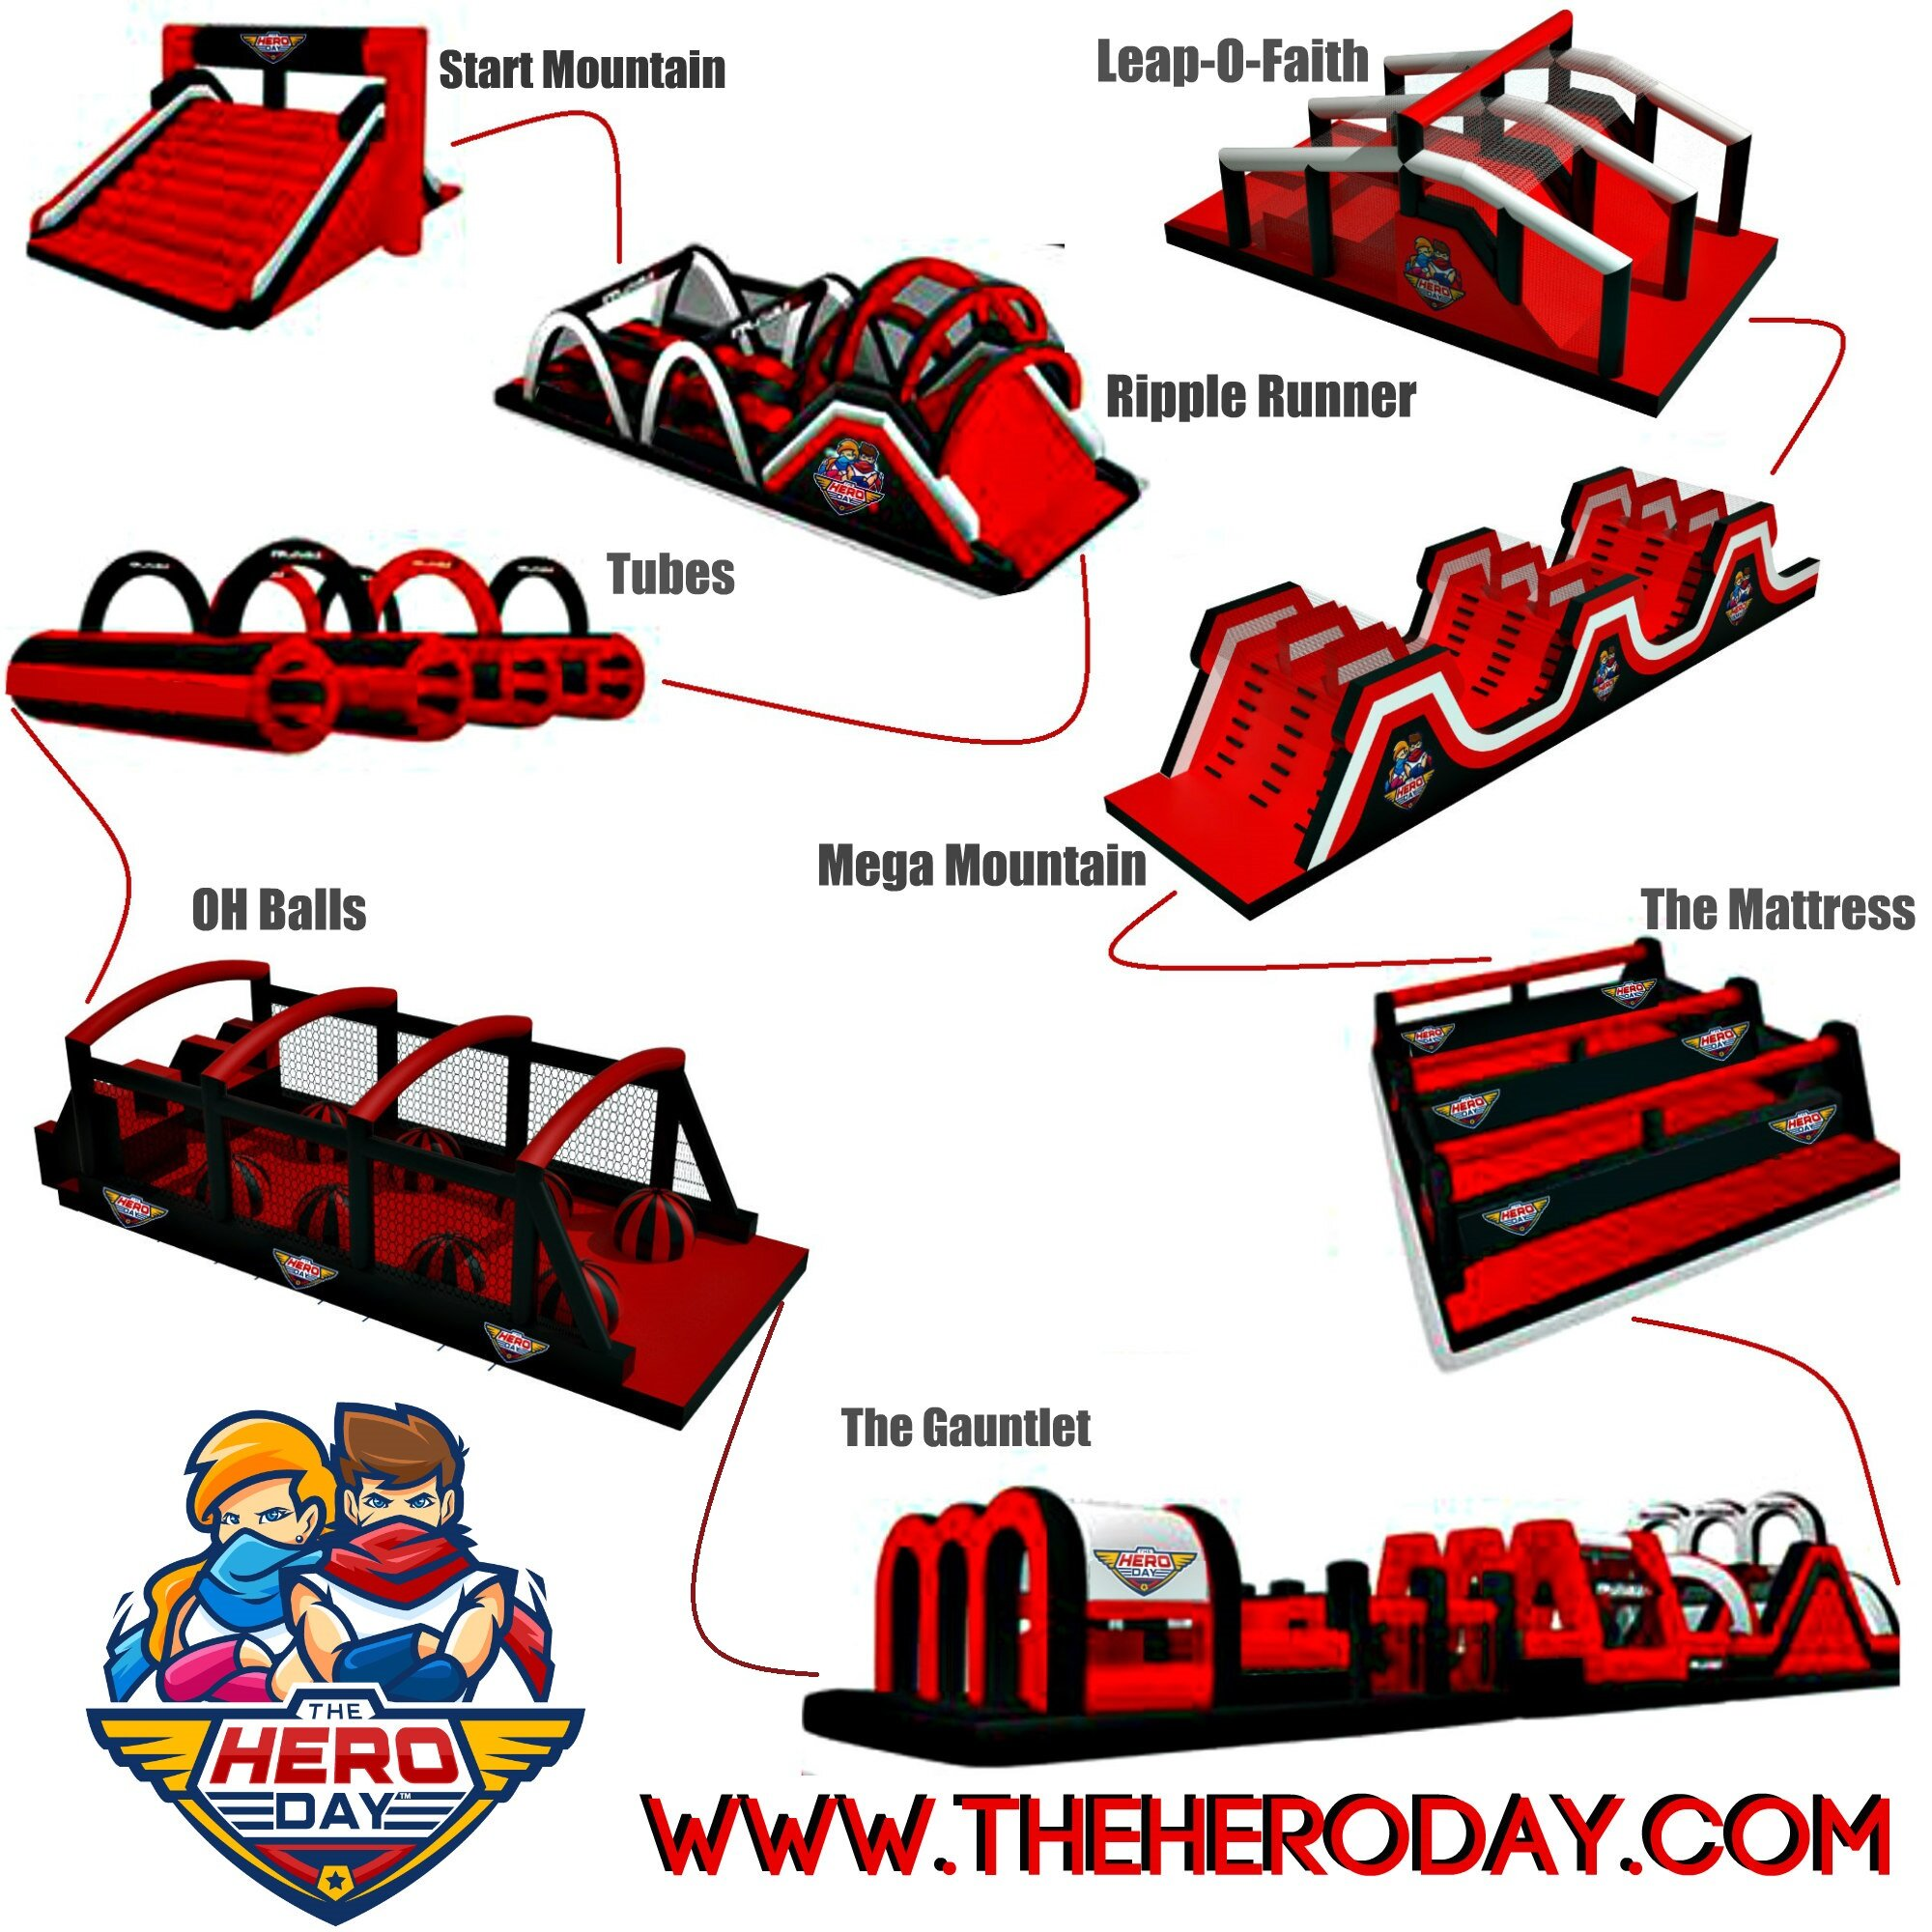 For 2020 The Hero Day™ presents The Inflatable Ninja Course.  The course is ideally set up in a horseshoe configuration with borrowed bleachers in the center to spectate the participants.  We typically charge $7-9.  per participant for two run attempts.